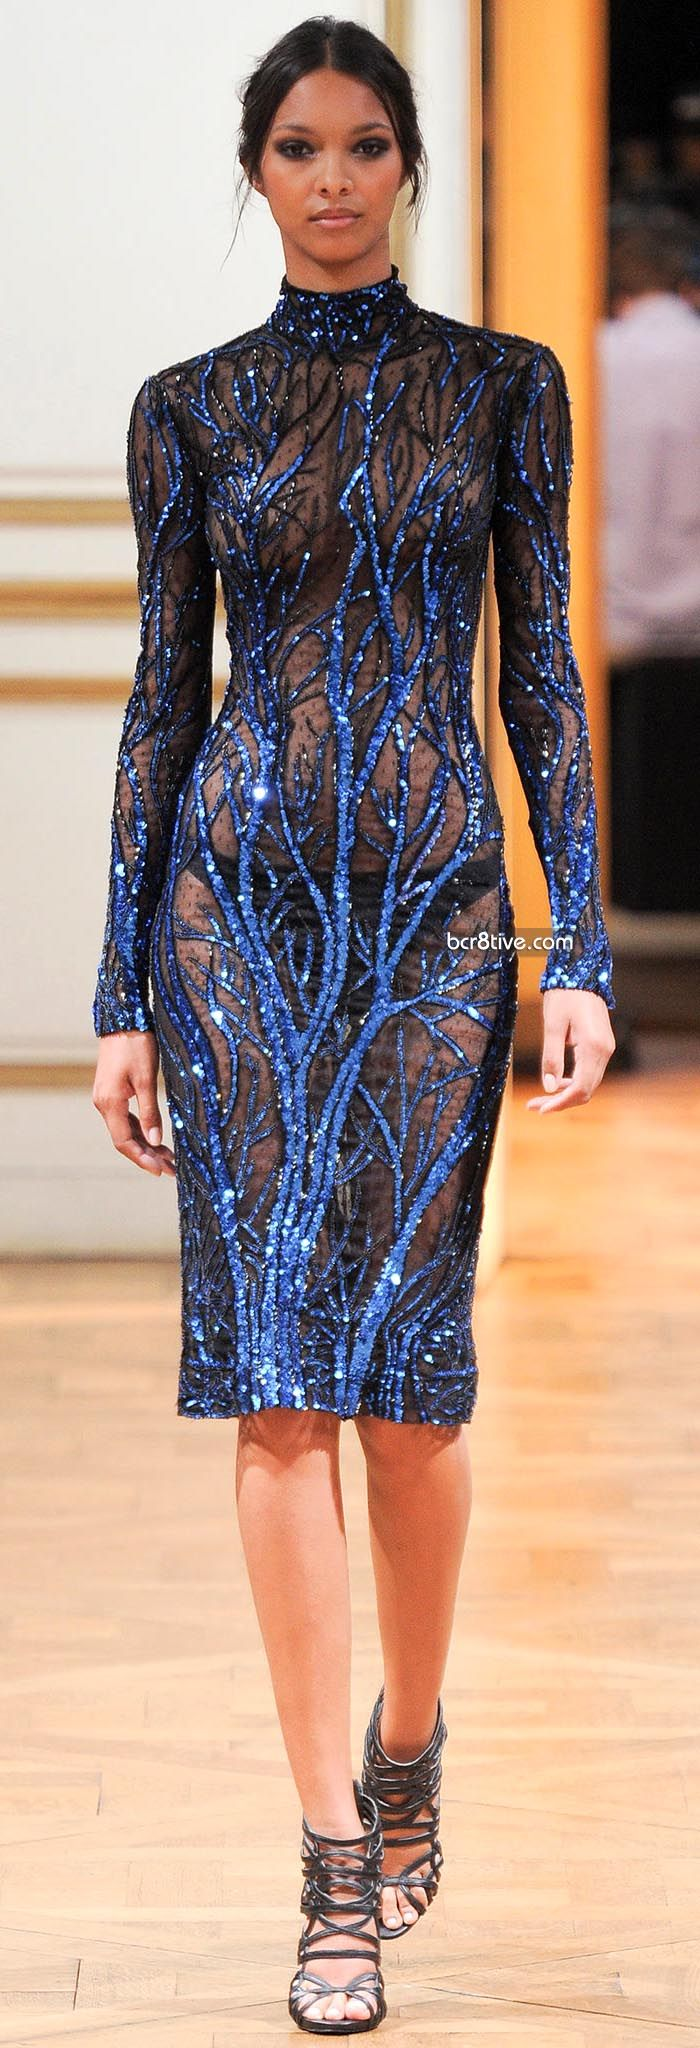 Zuhair Murad Haute Couture Collection